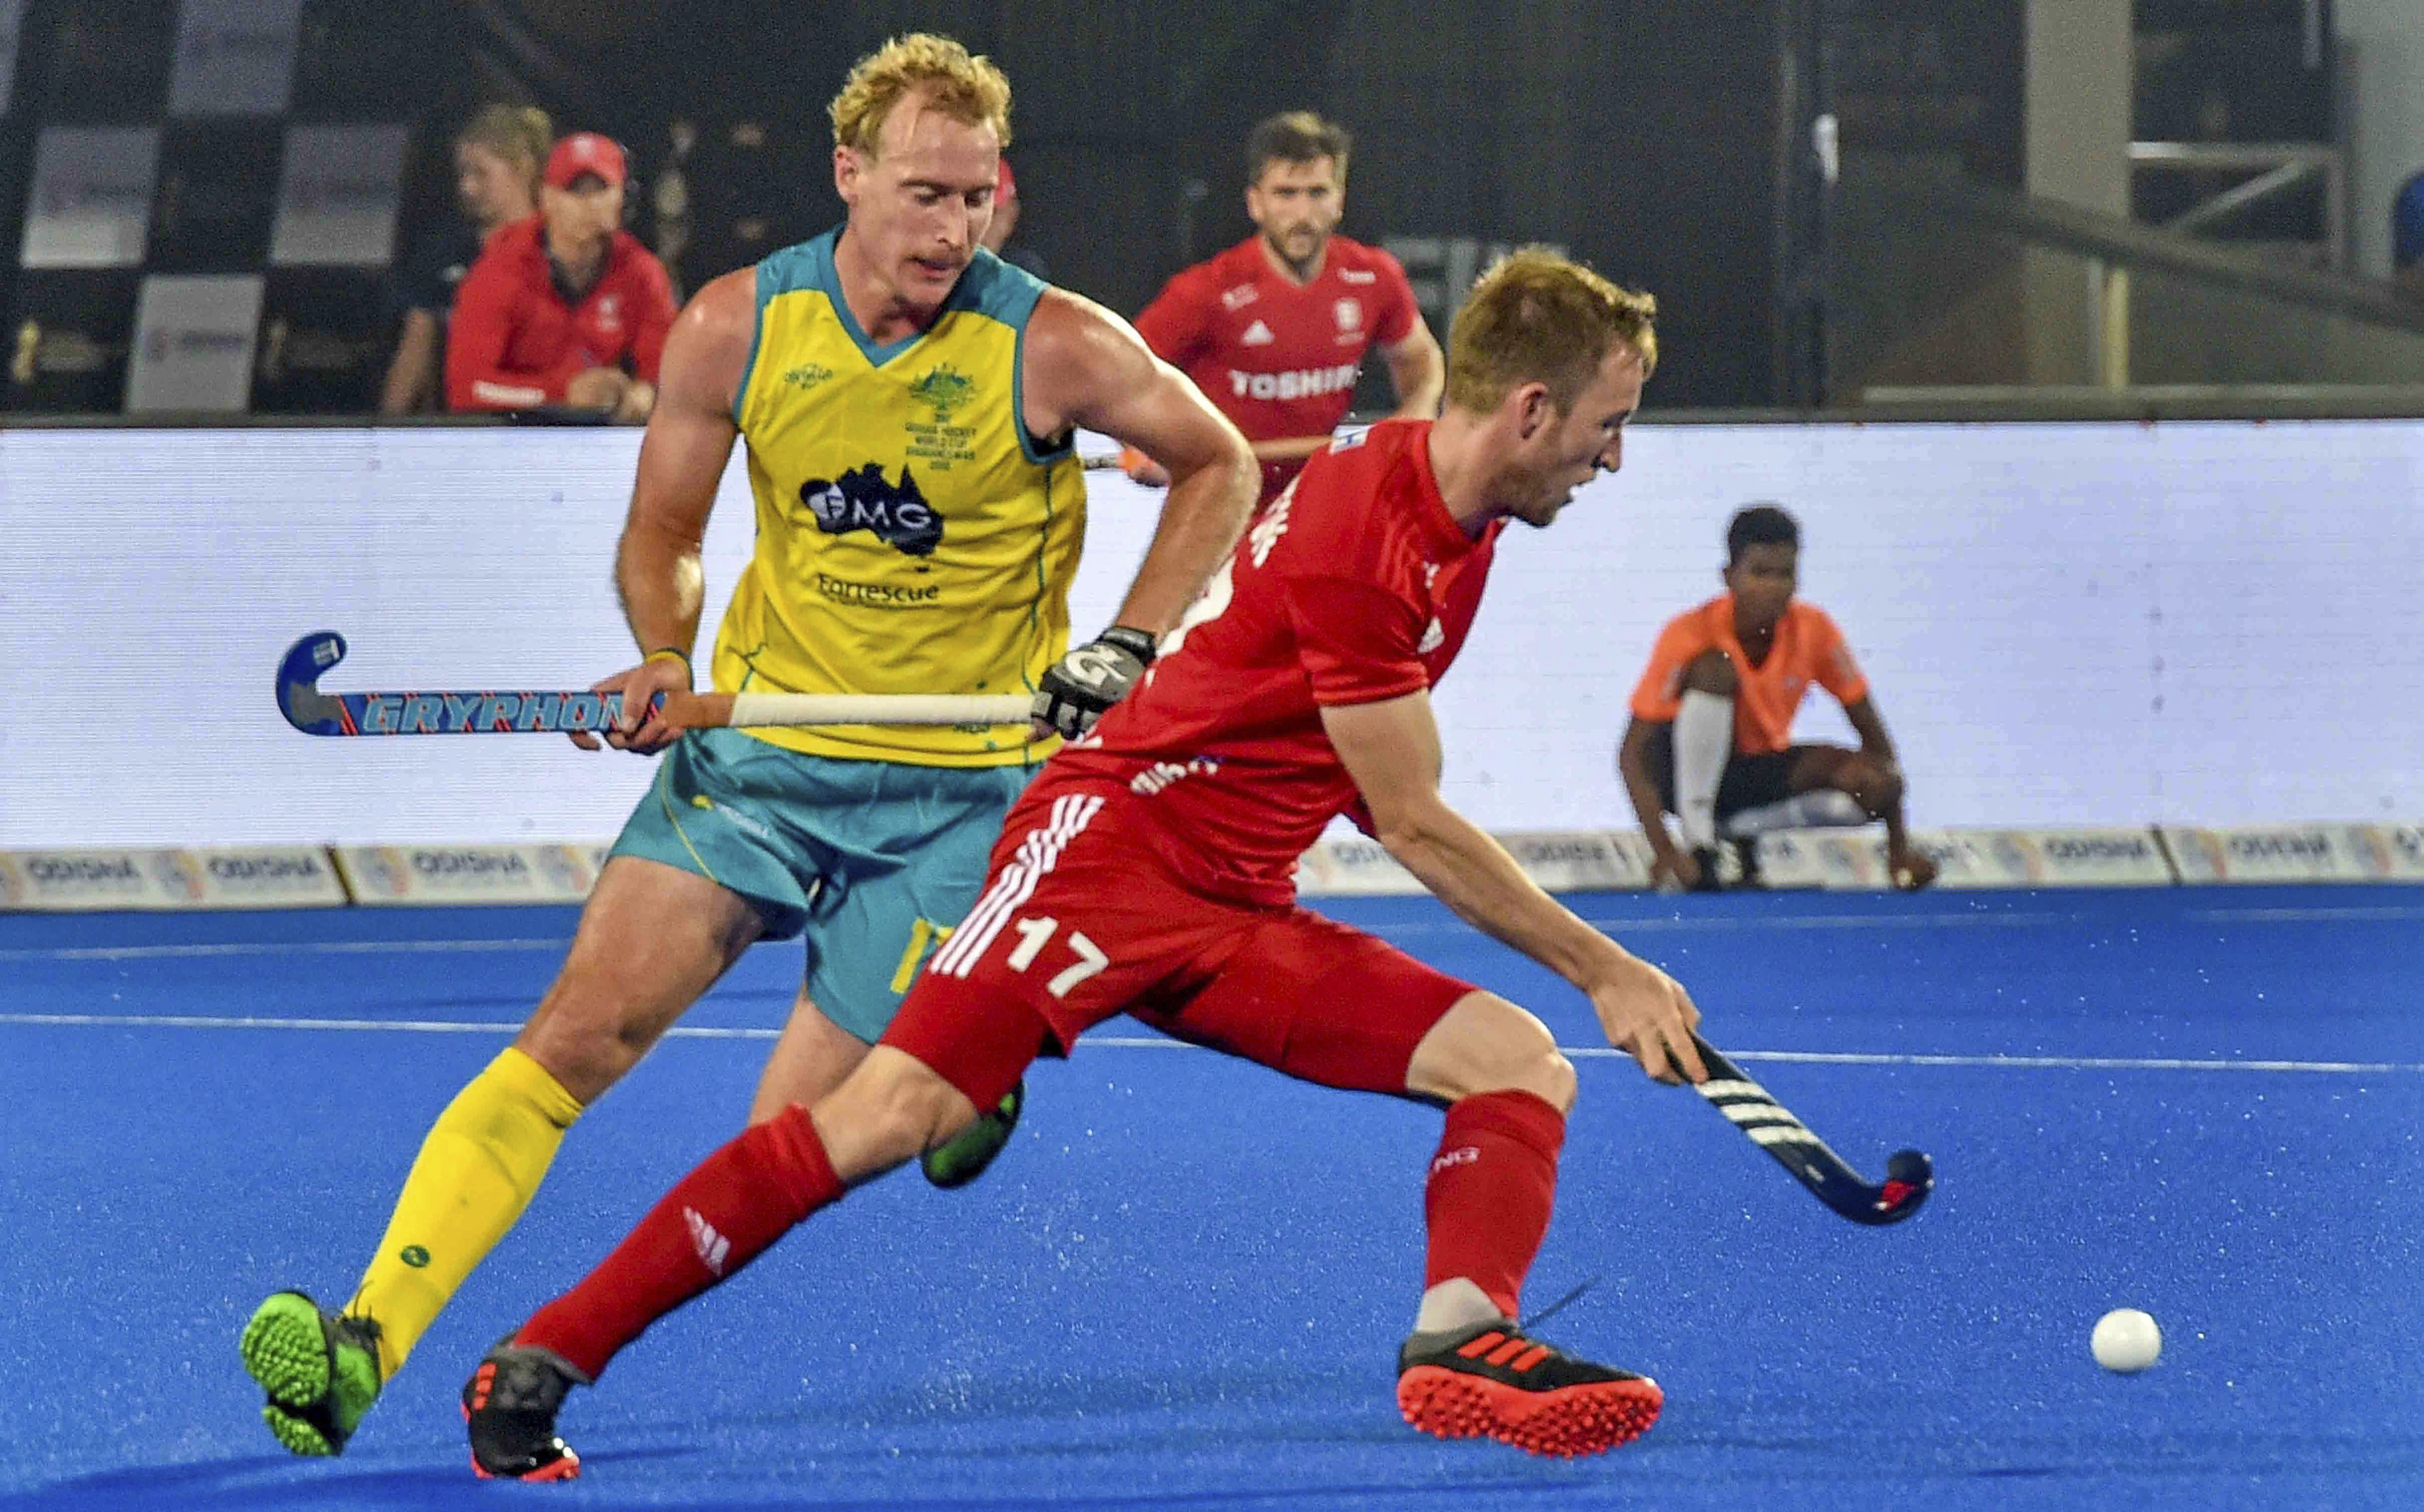 Australia's (yellow) captain Aran Zalewsk in action during a match against England's Barry Middleton, at Men's Hockey World Cup 2018, at Kalinga Stadium in Bhubaneswar - PTI